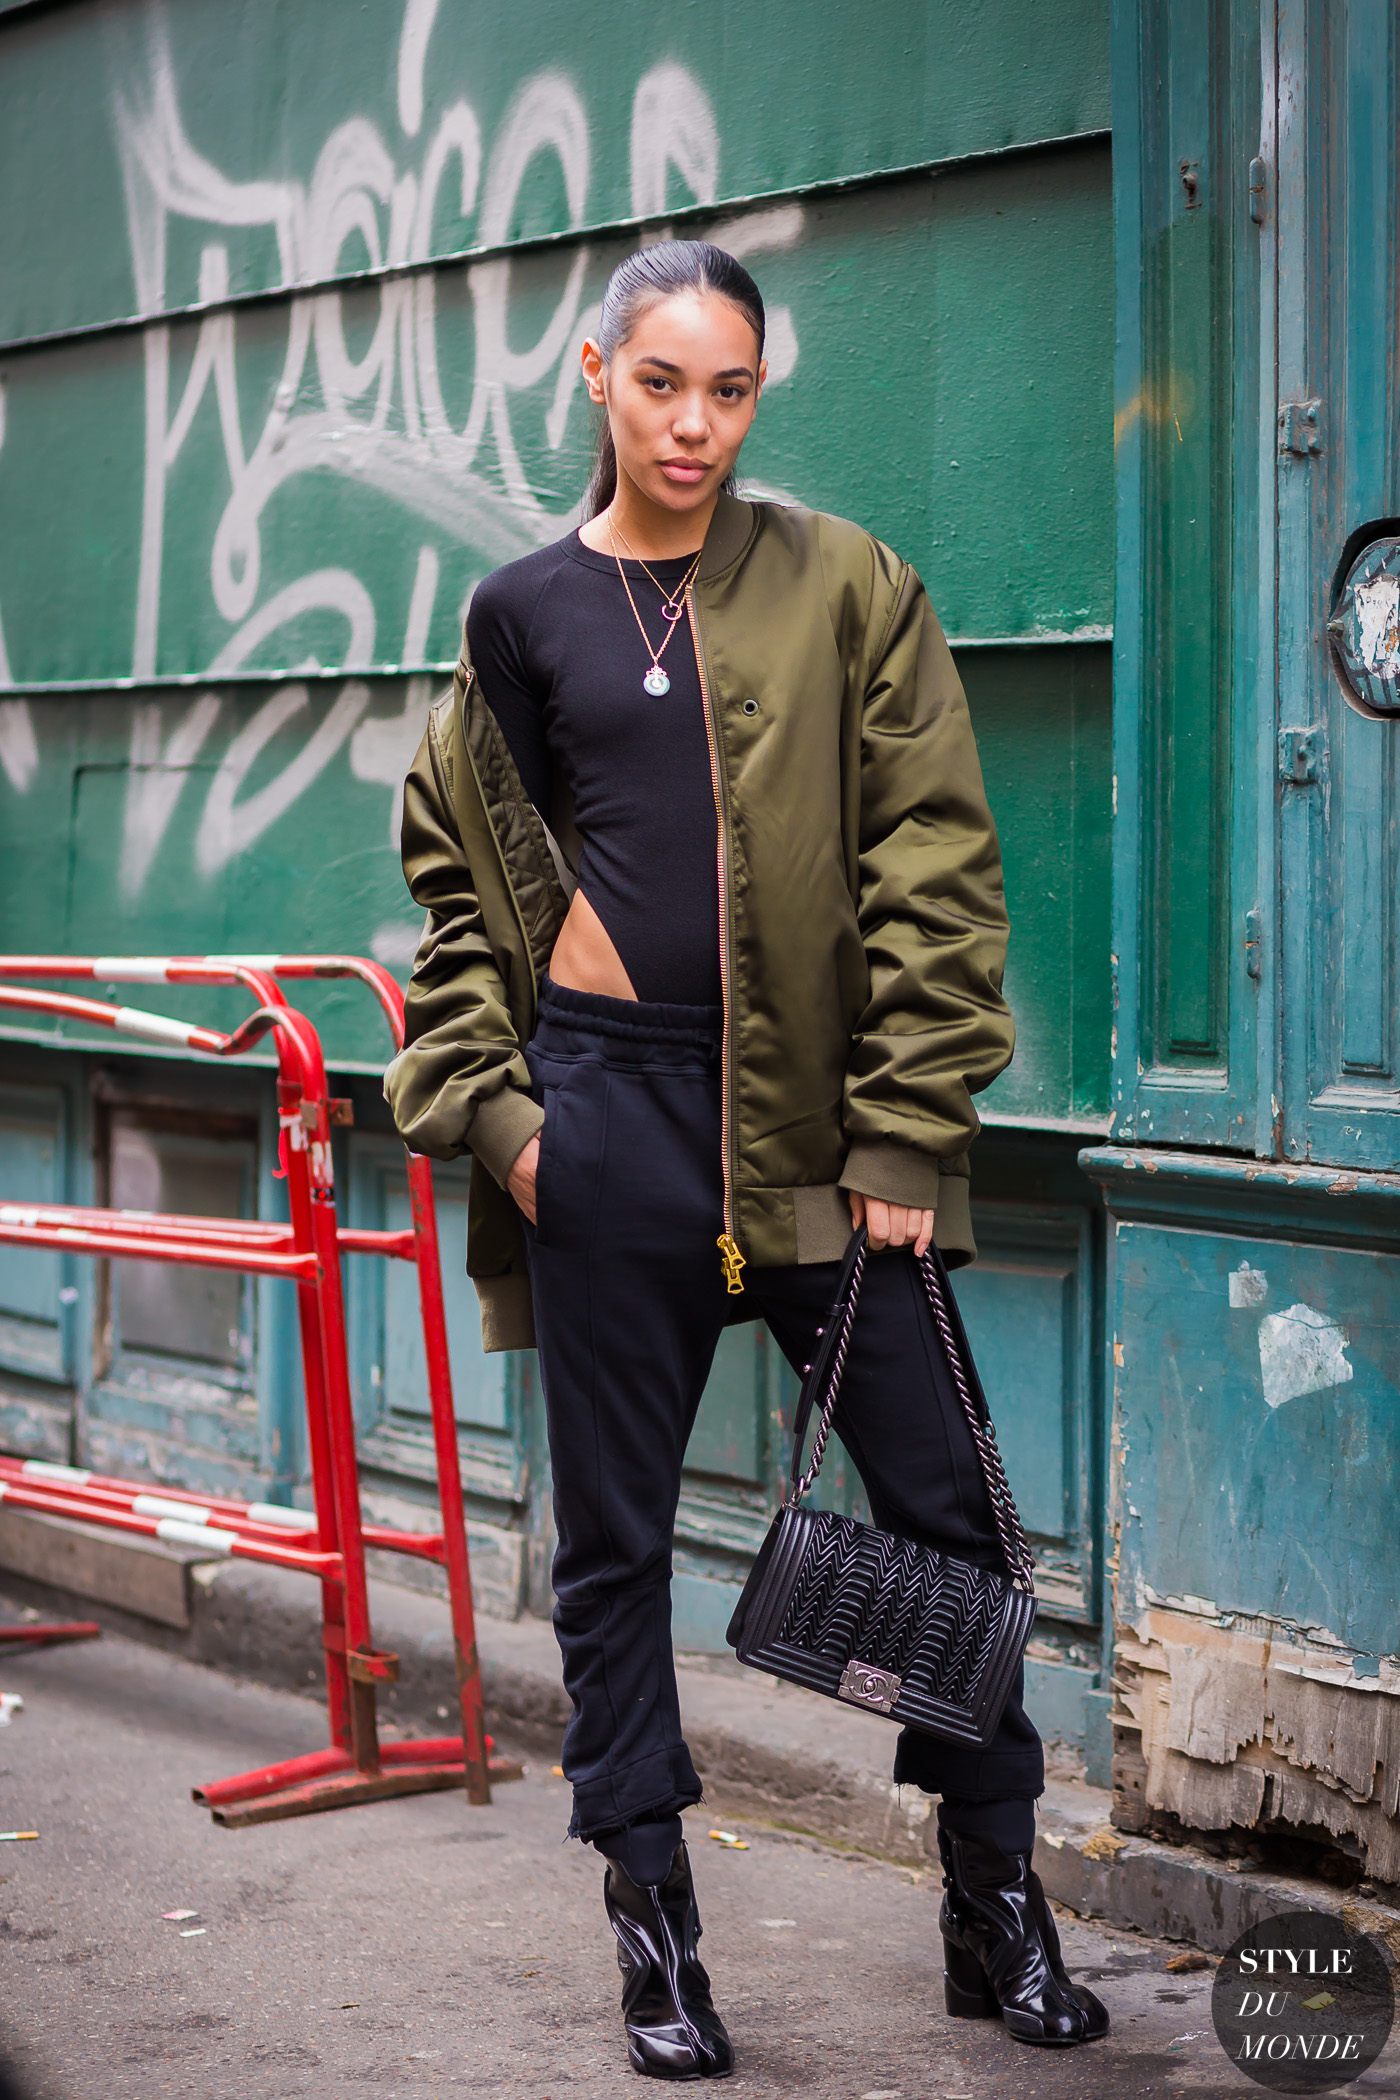 Aleali May Street Style Street Fashion Streetsnaps by STYLEDUMONDE Street Style Fashion Photography